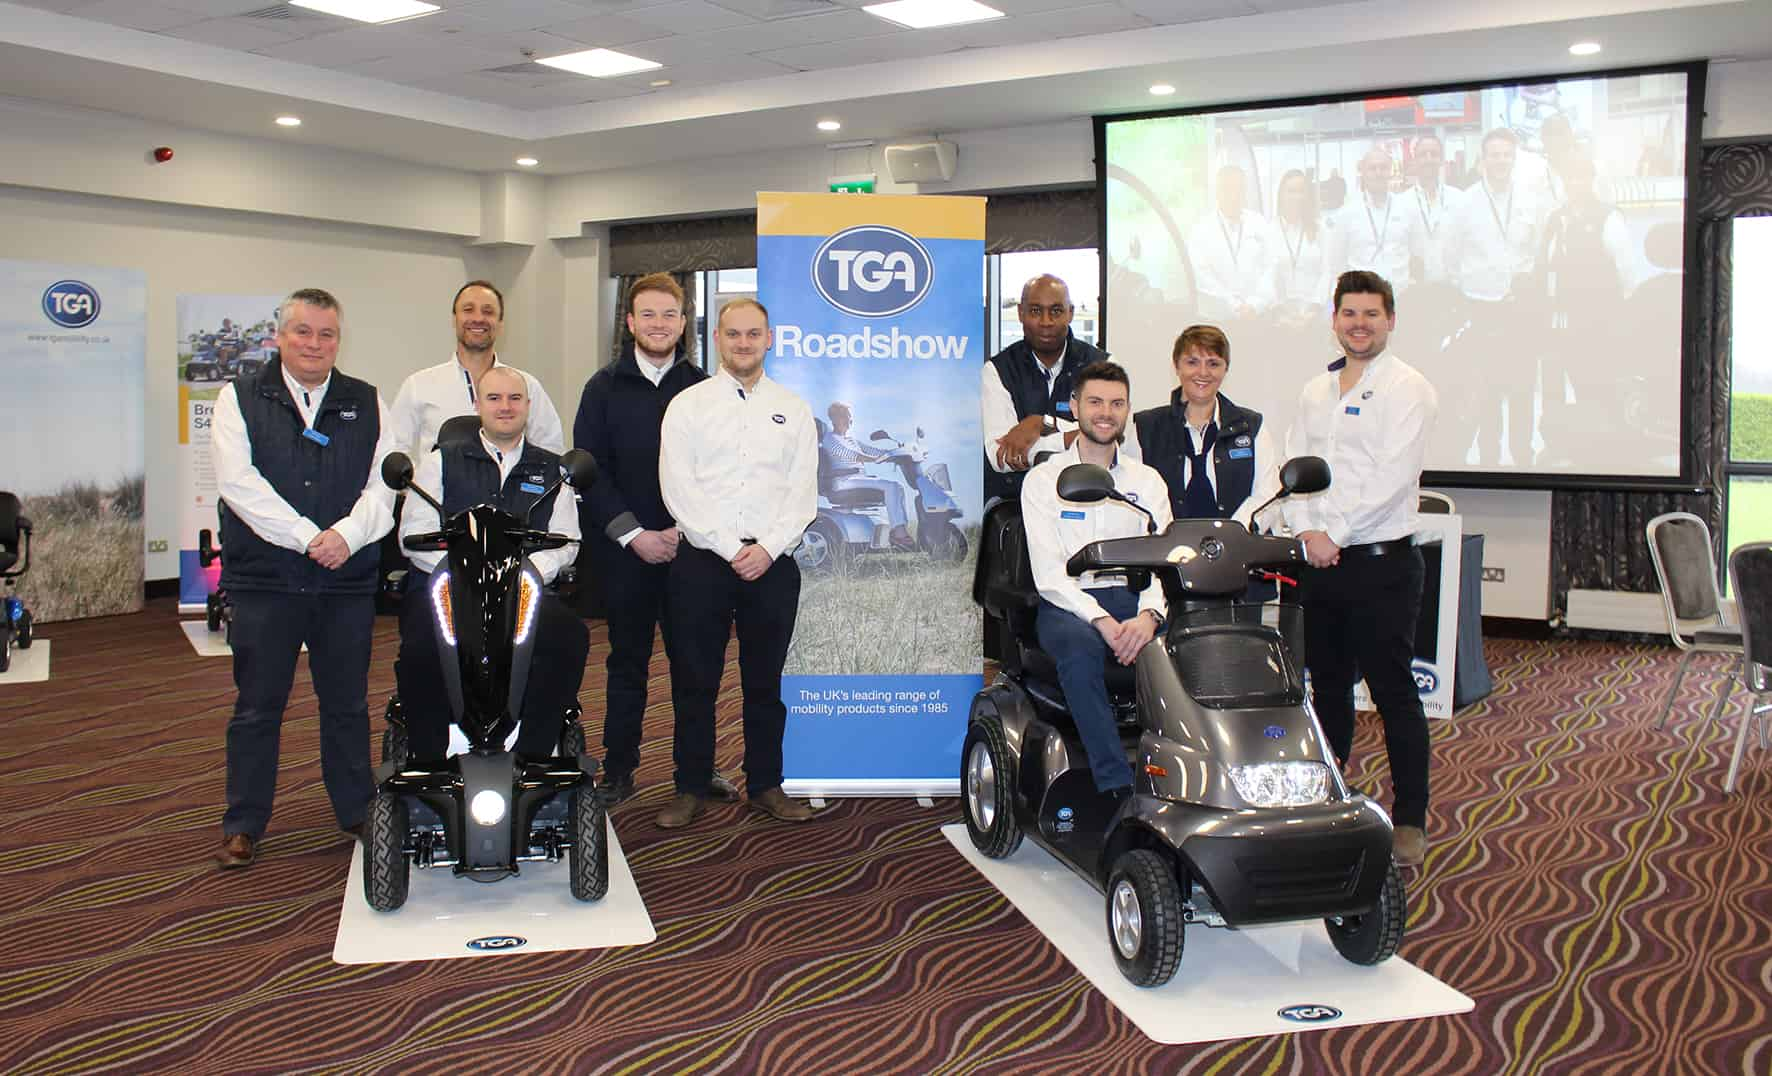 Dublin TGA Trade Roadshow success image